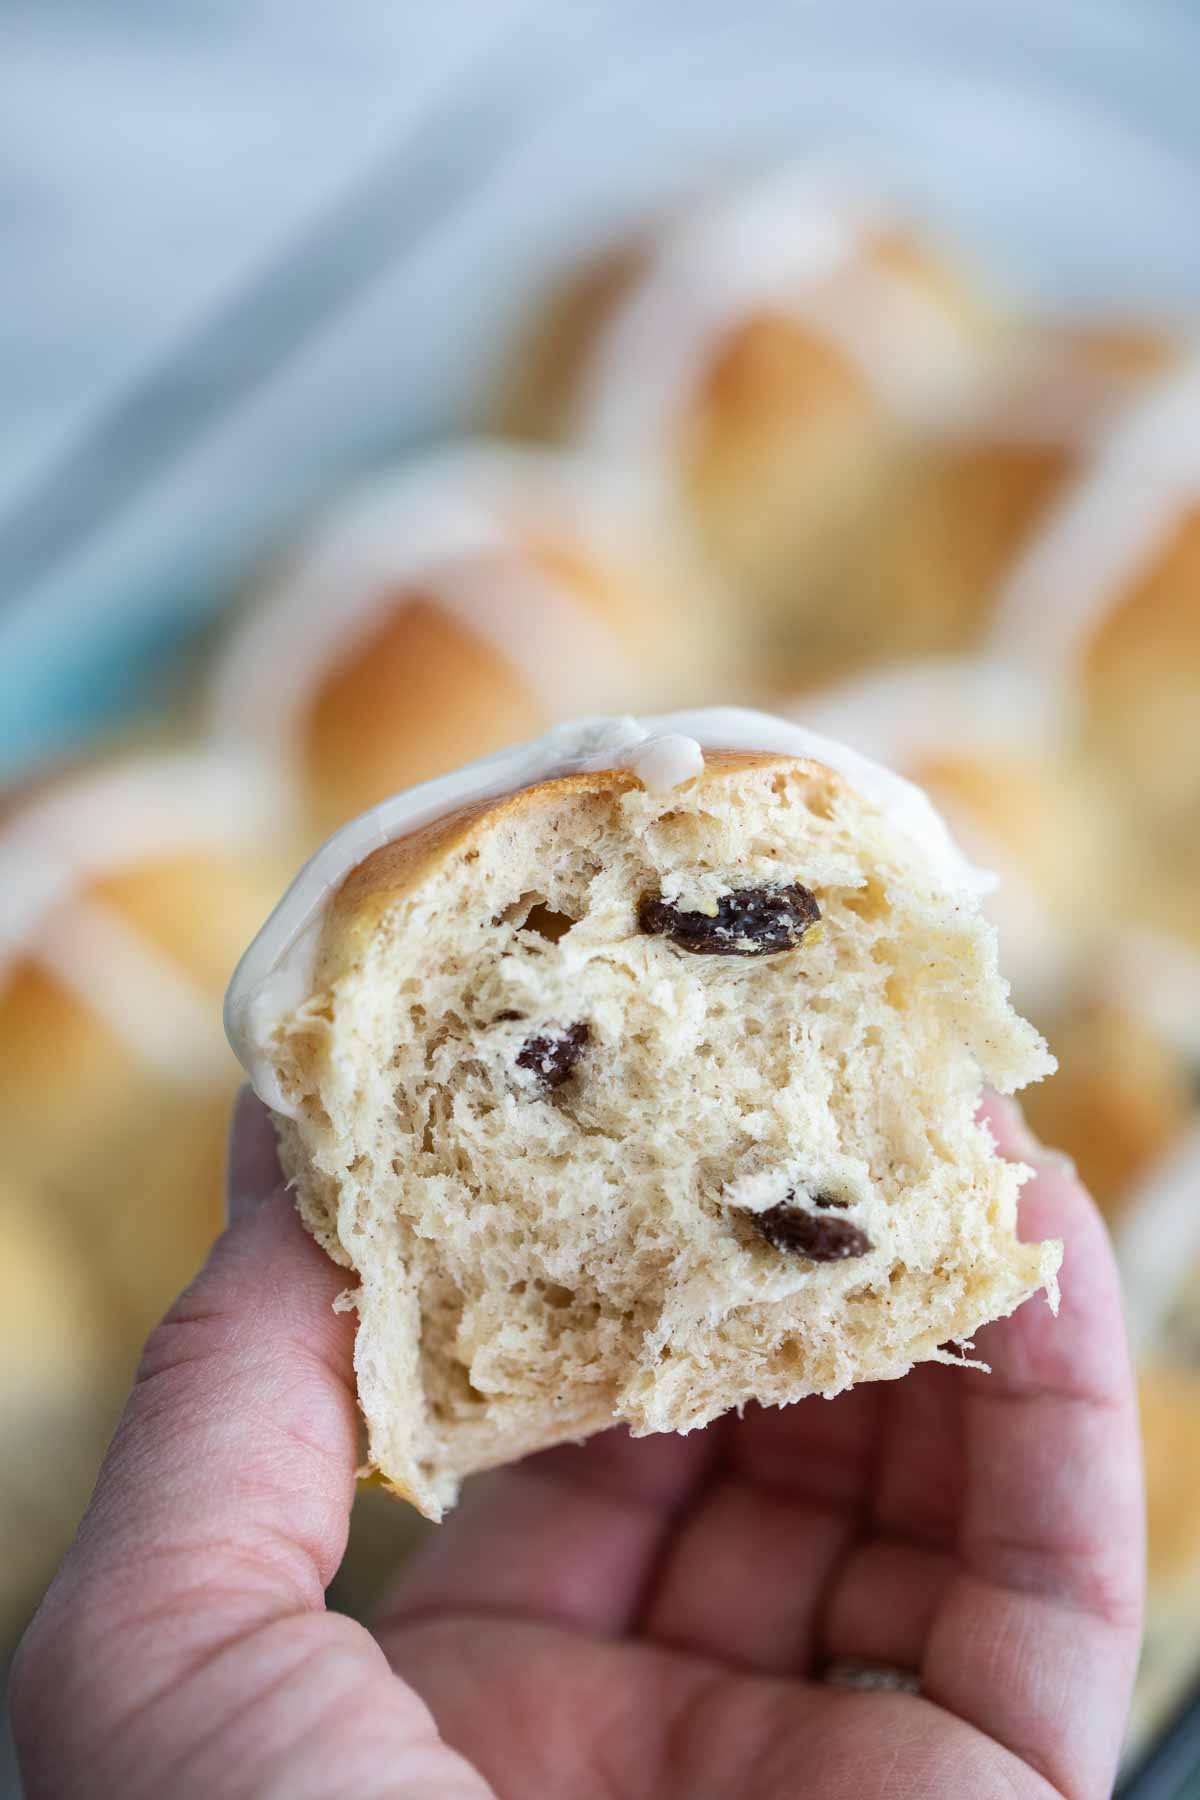 showing texture of hot cross buns with raisins